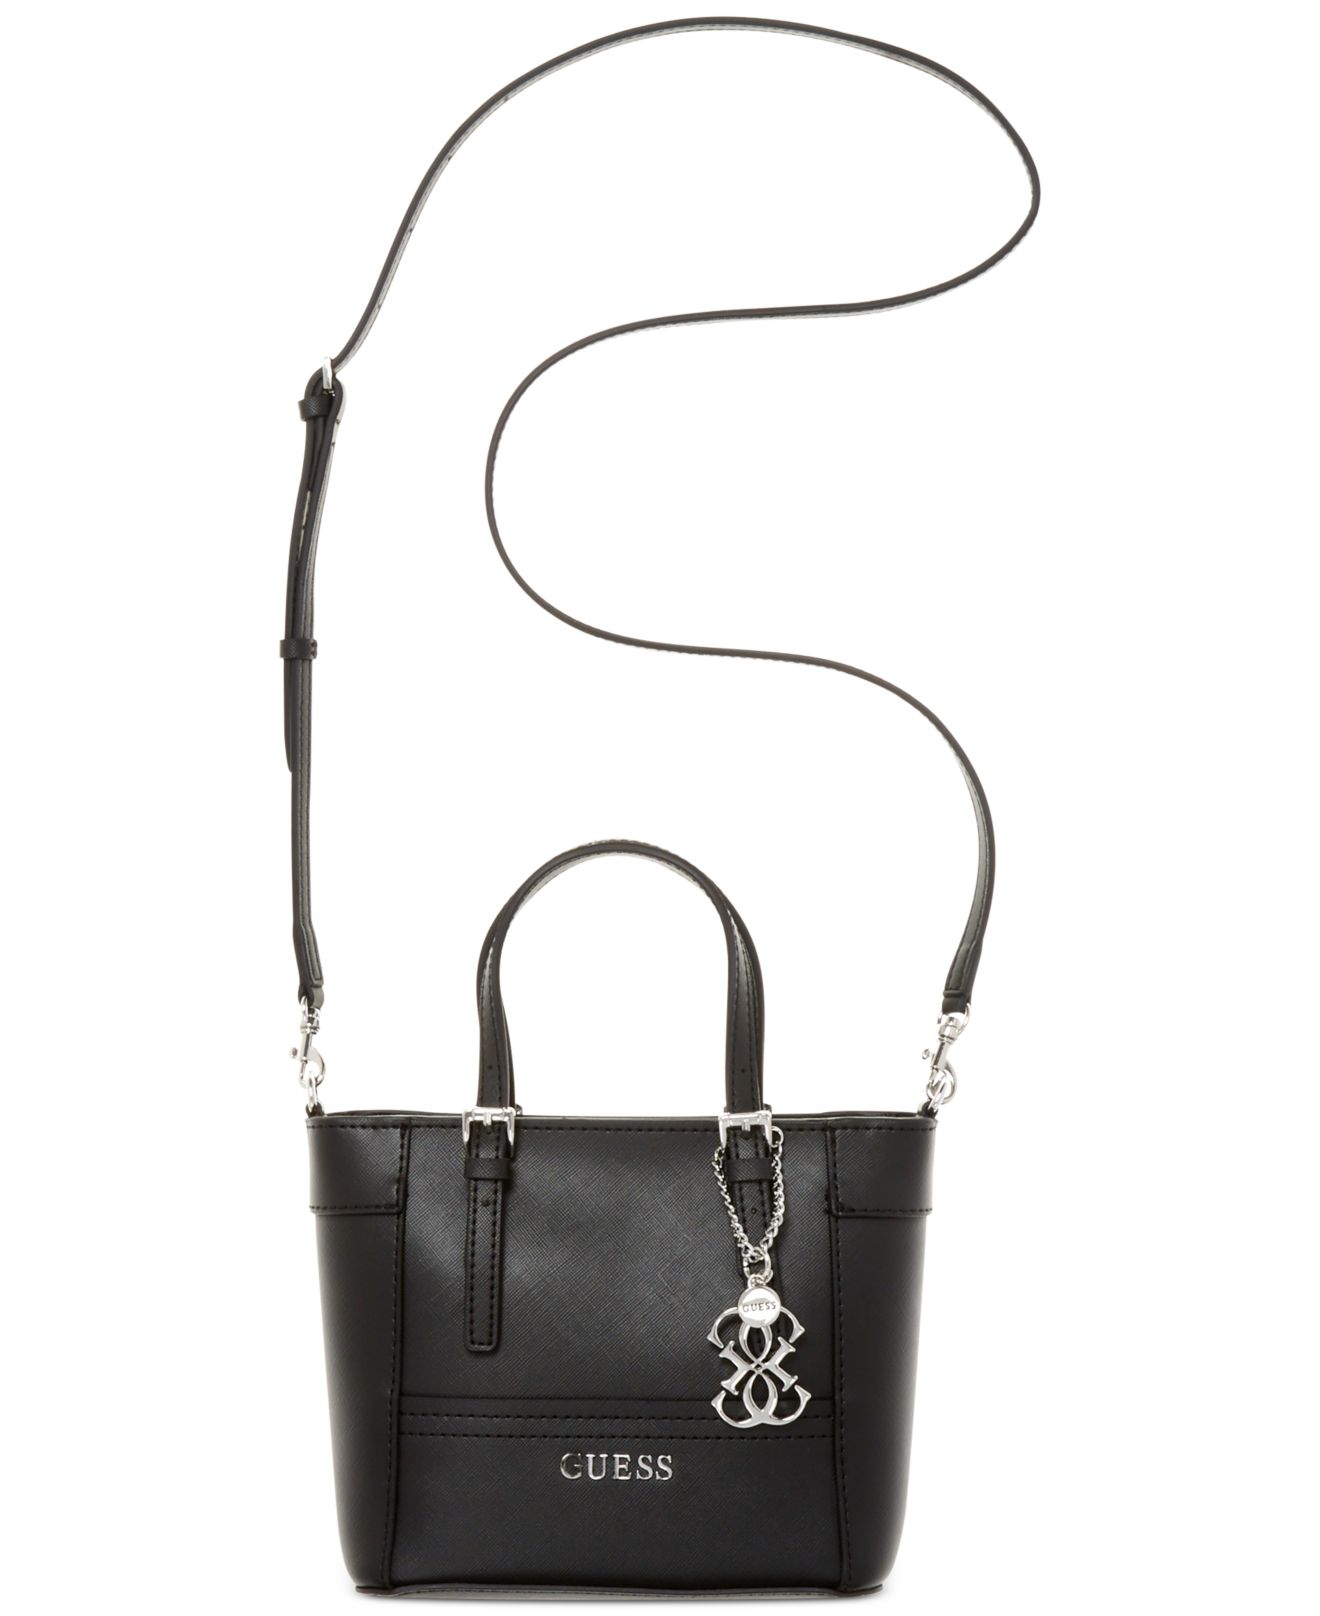 Lyst - Guess Delaney Petite Tote With Crossbody Strap in Black 8e0f007bcfd7b